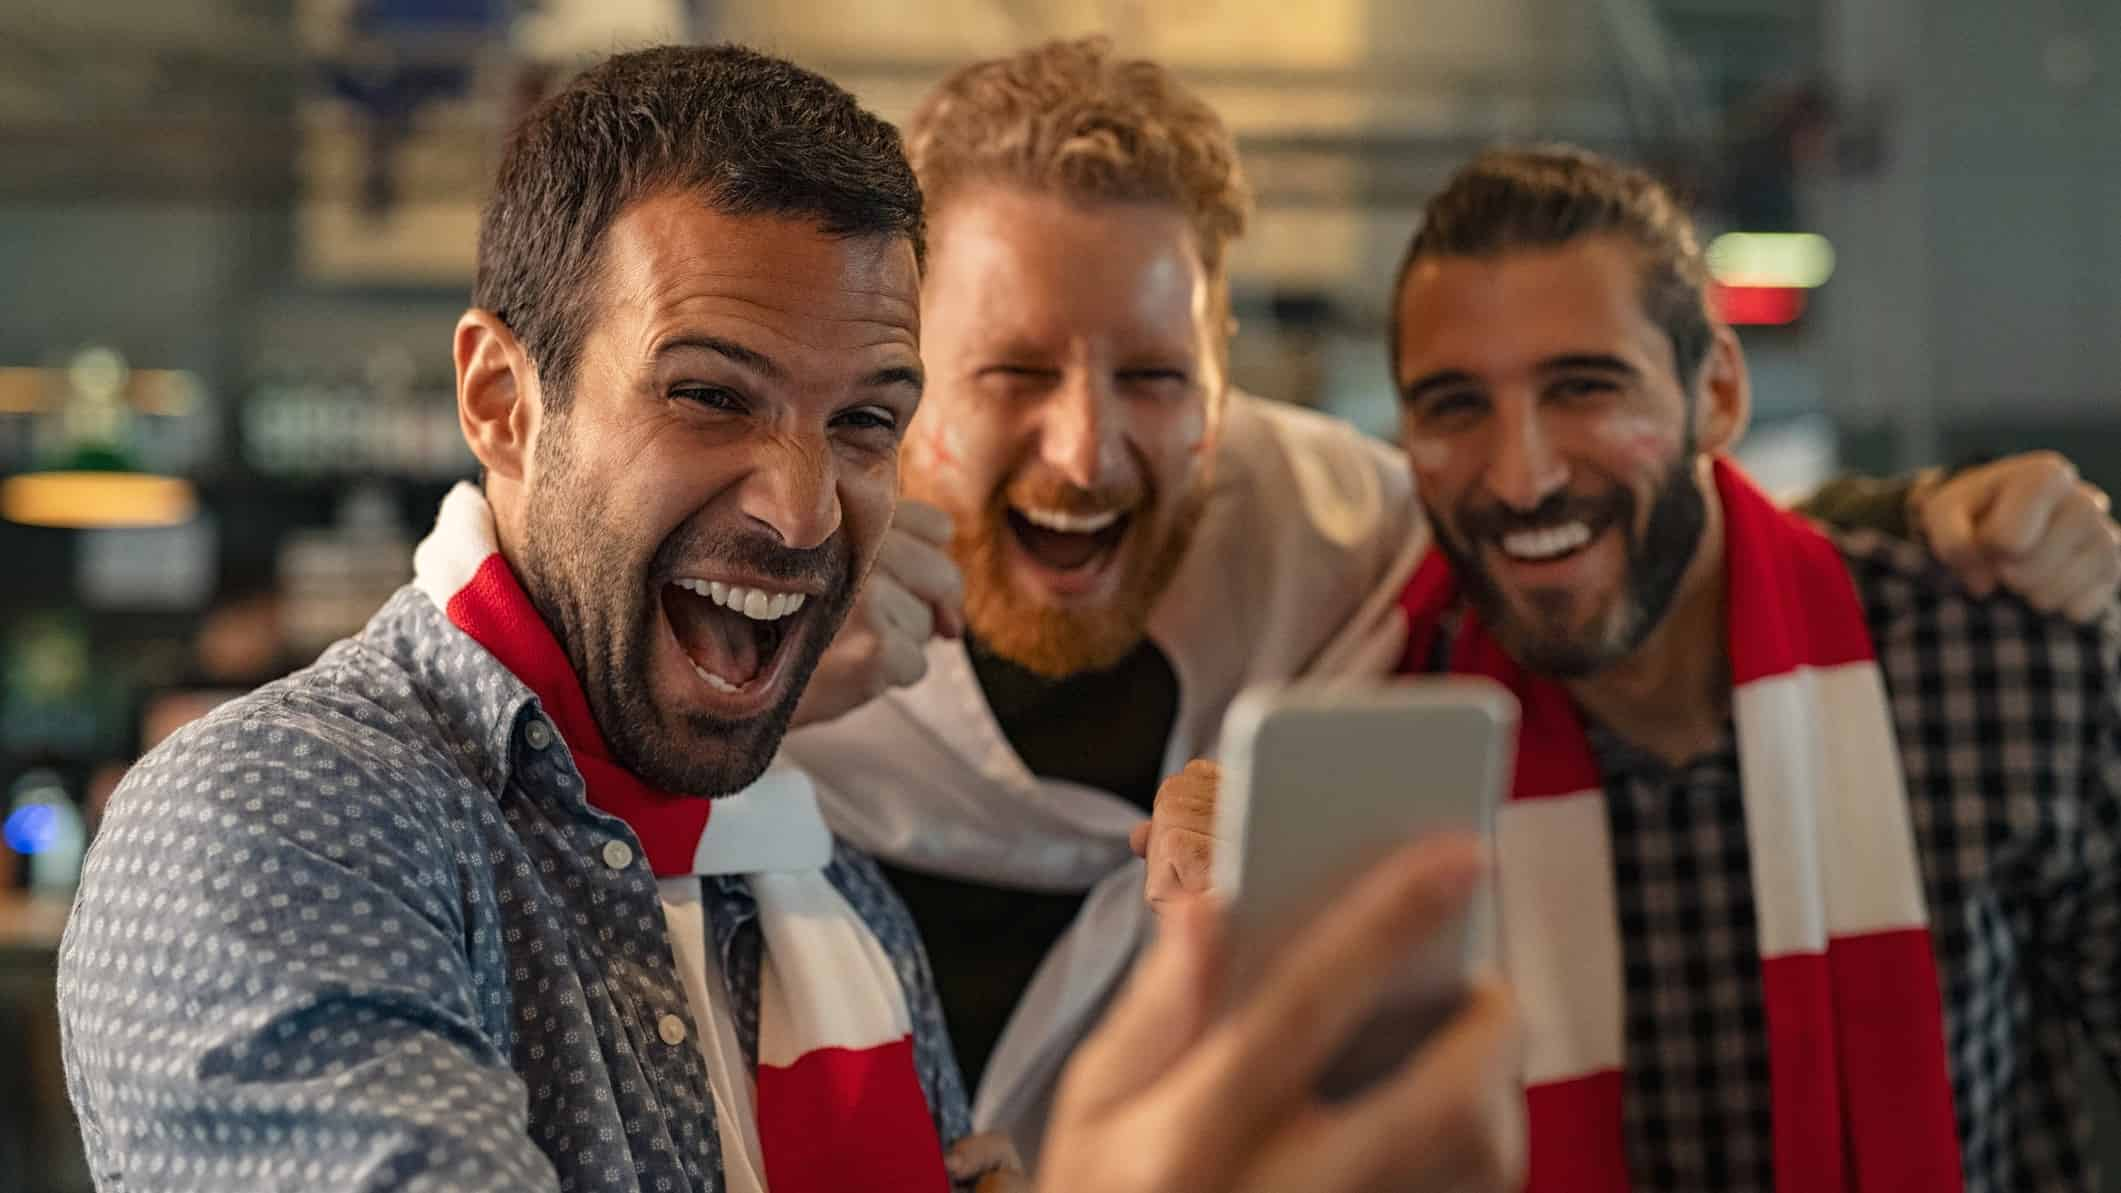 cheering sports fans looking at smart phone representing surging pointsbet share price